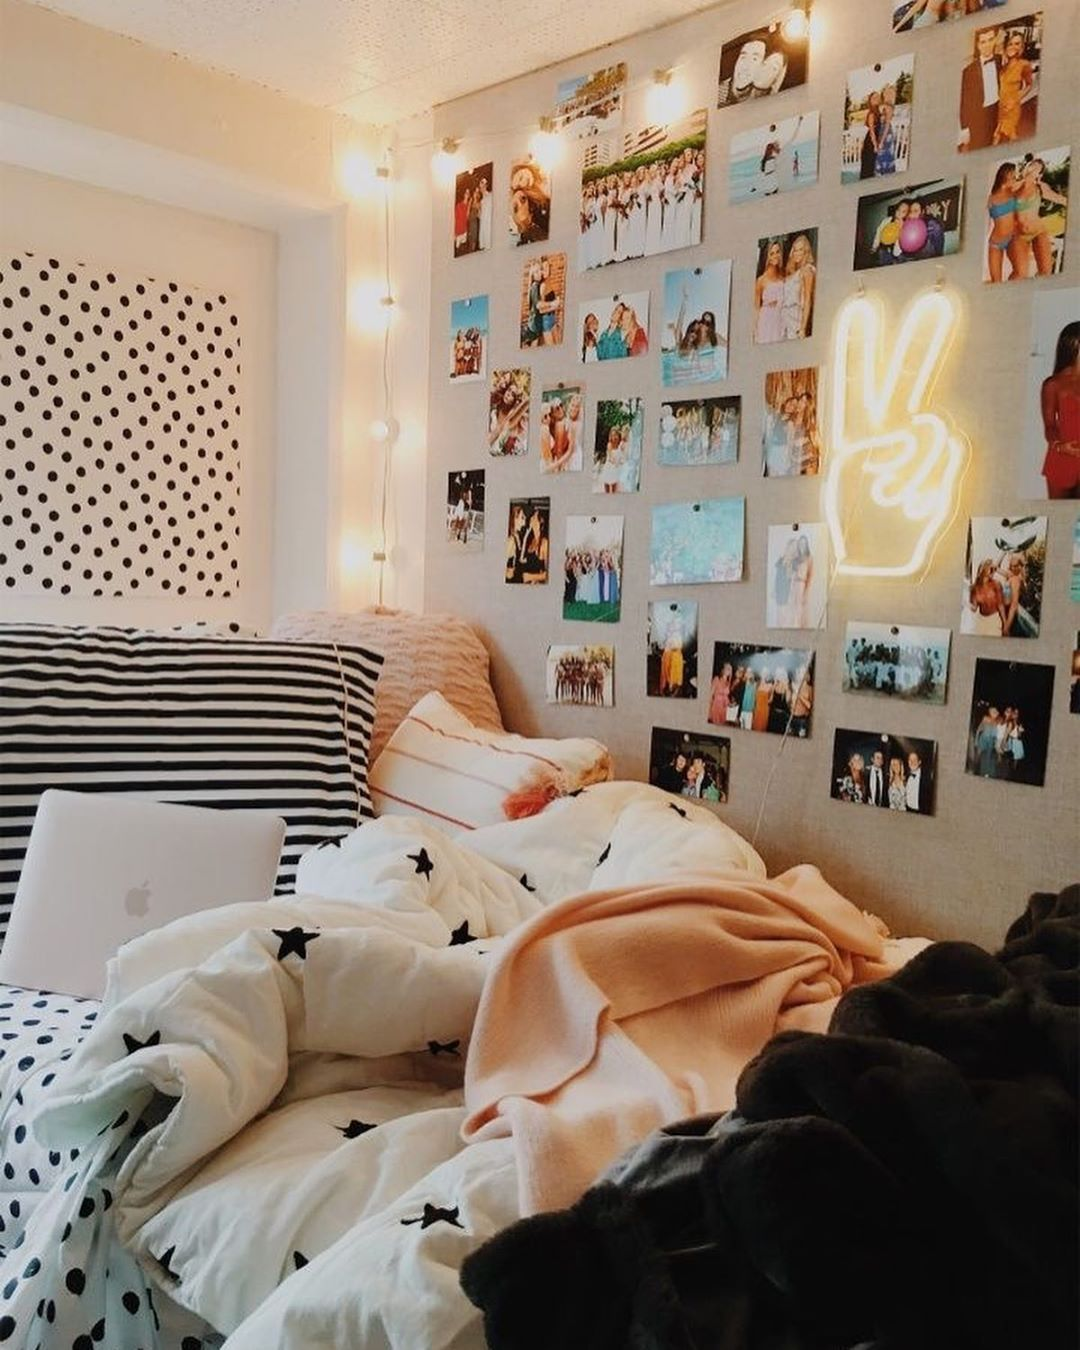 Vsco On Instagram Cute Room Ideas Q Do You Like Your